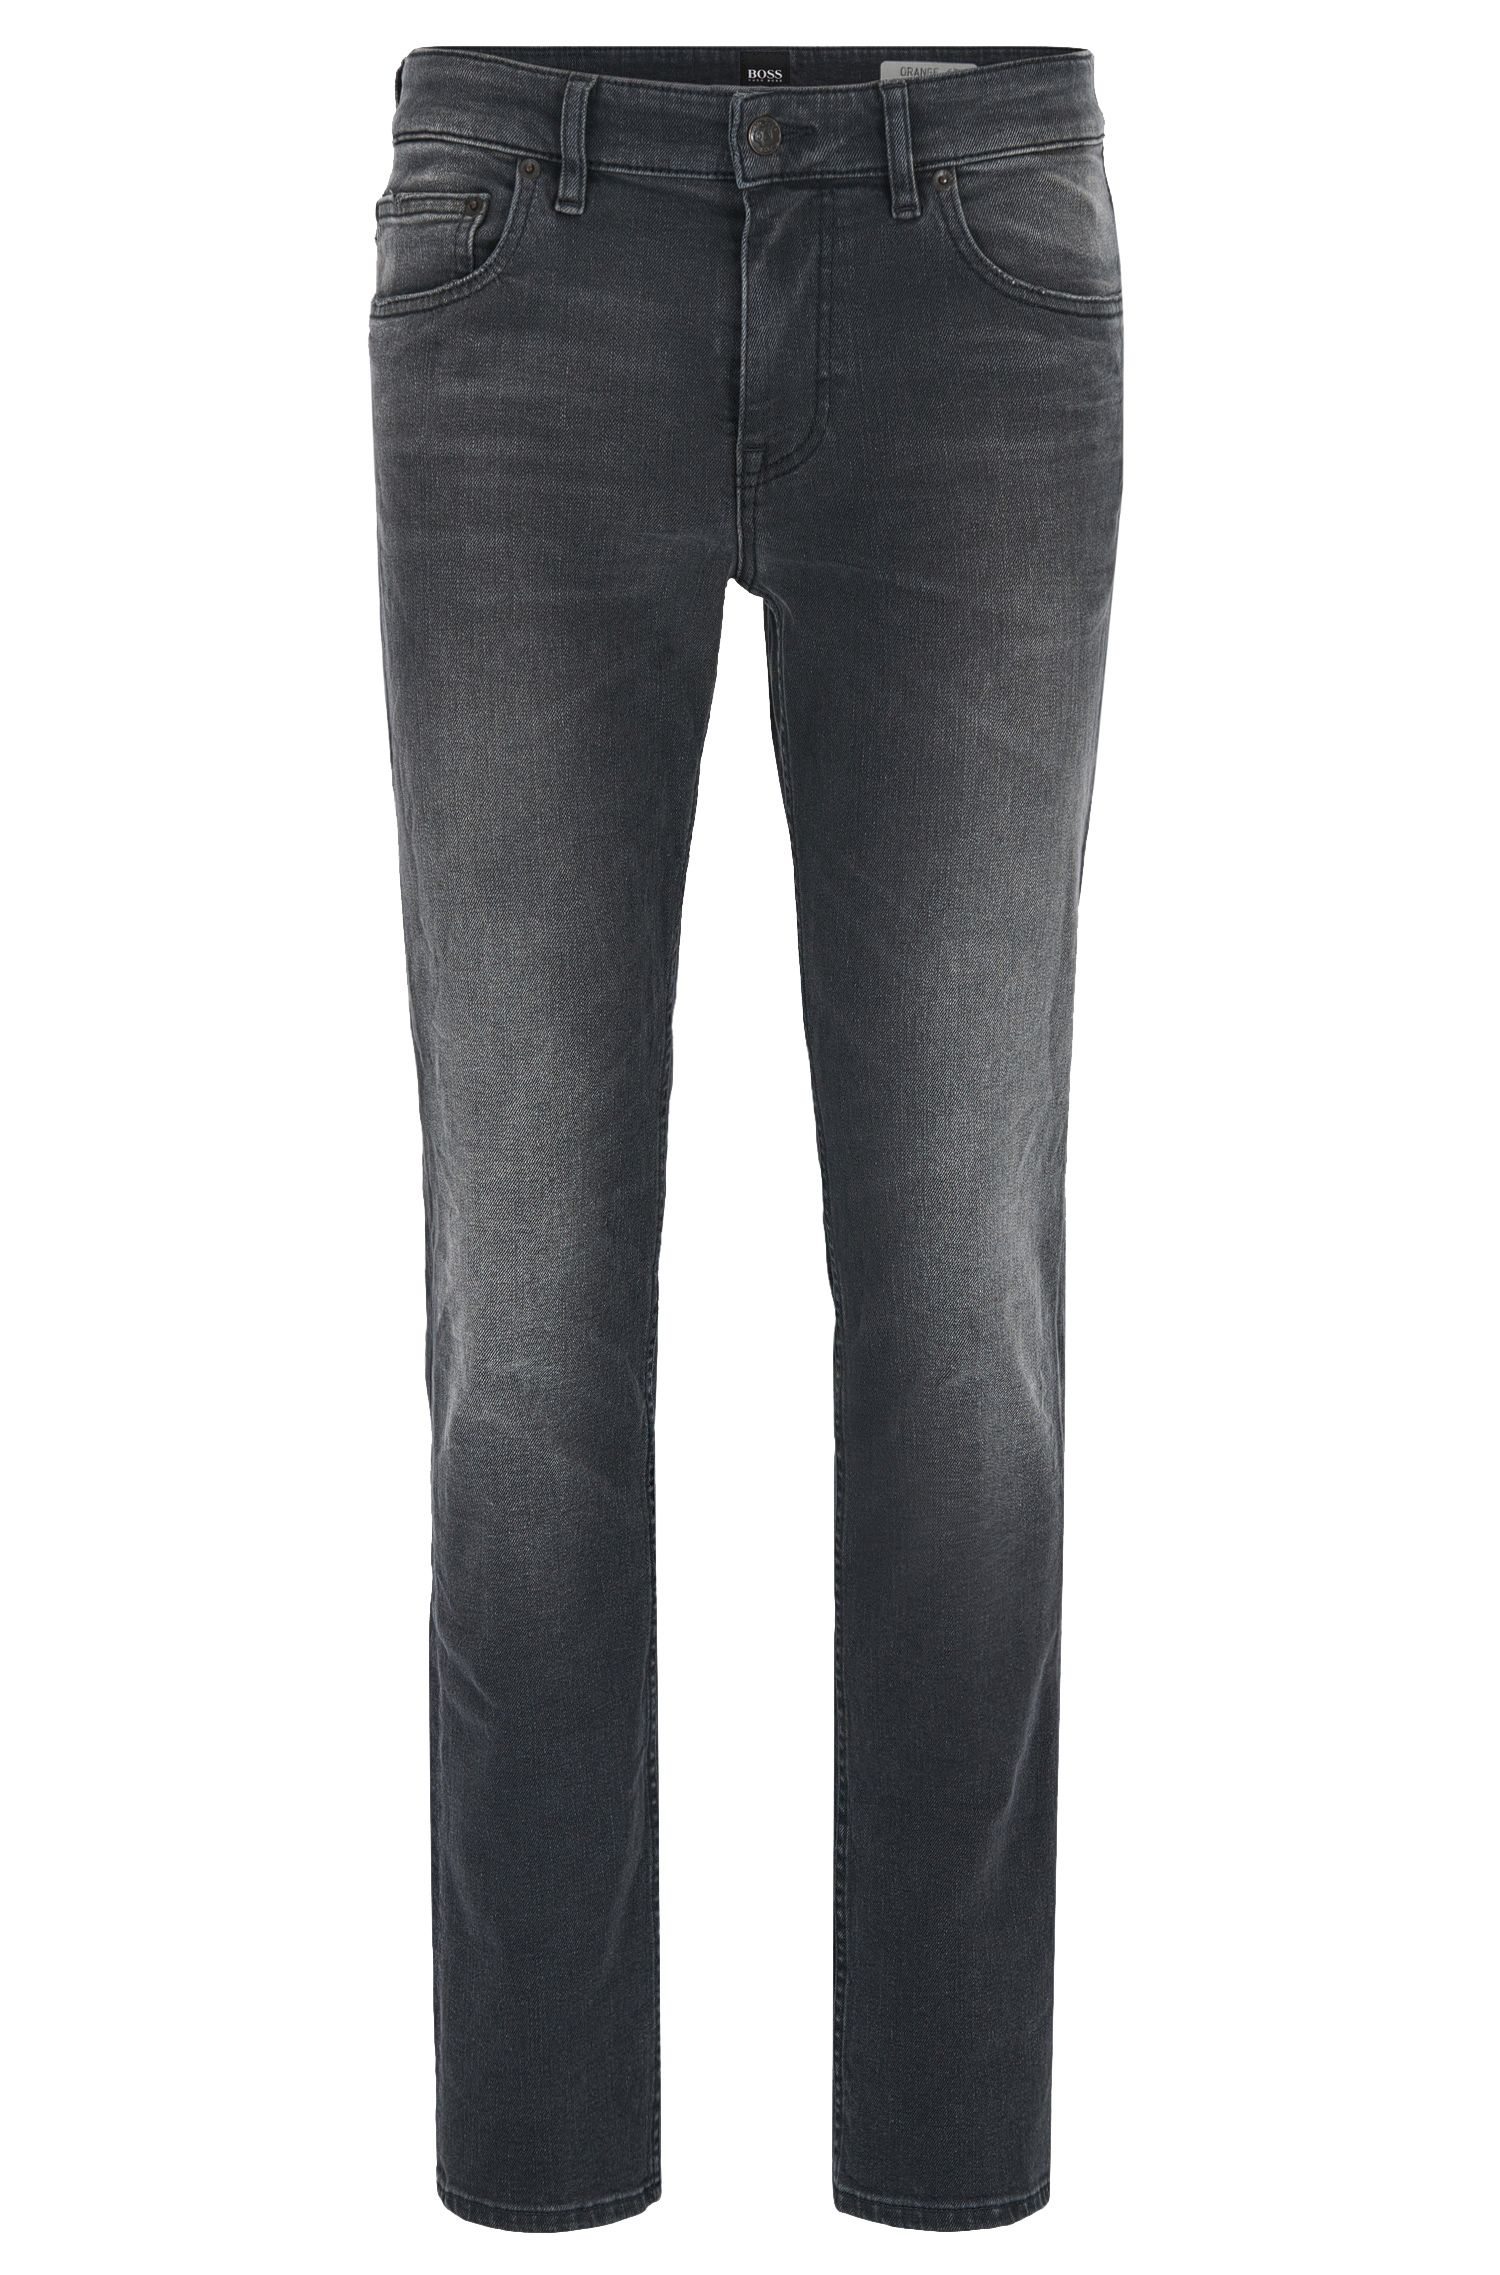 Jean Slim Fit en denim stretch lavé pour le confort